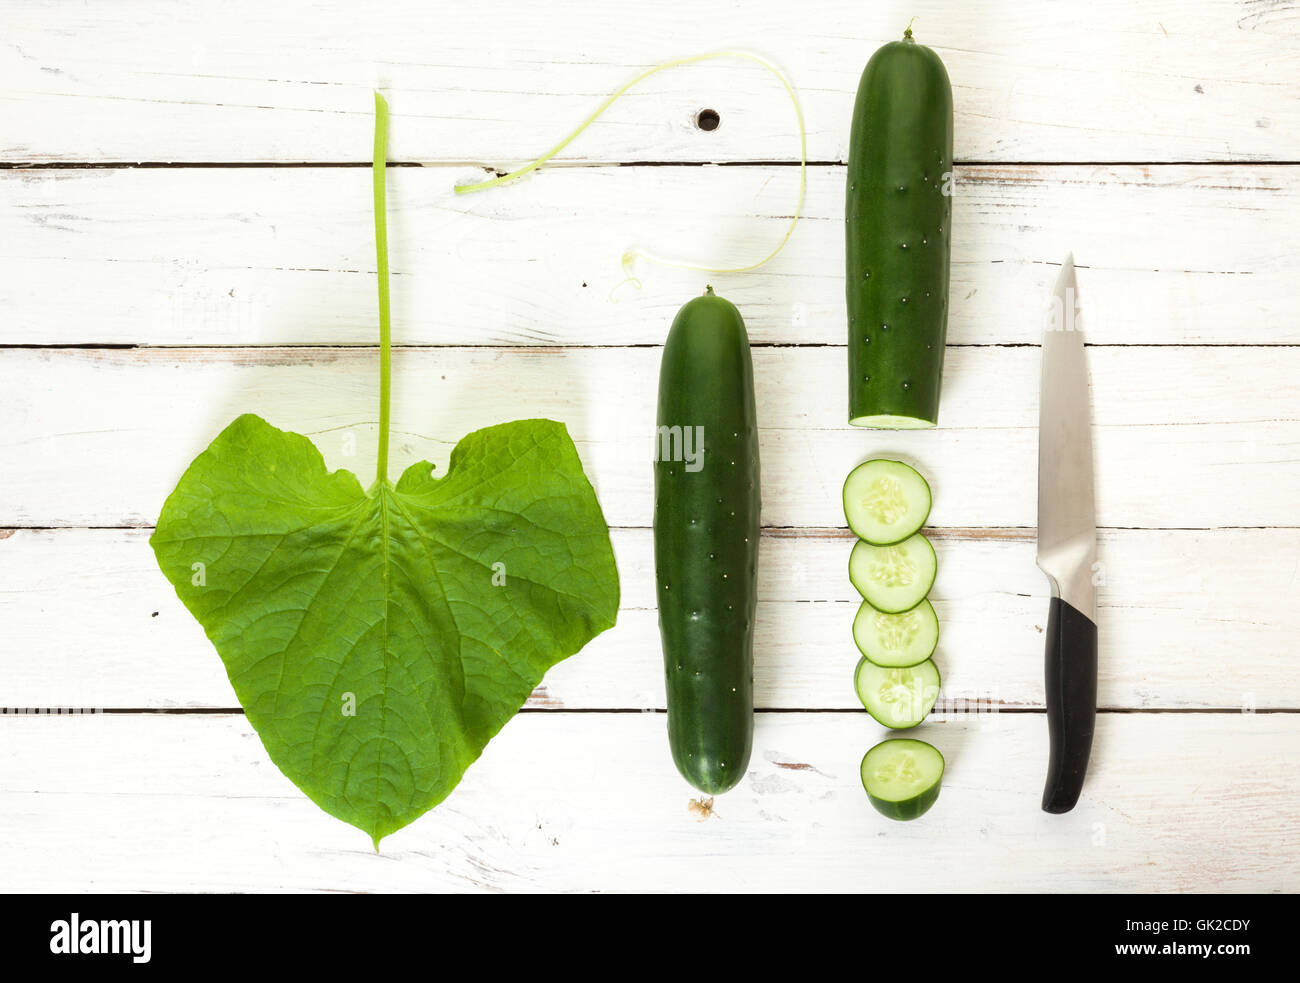 Flat lay still life of cucumbers with their leaf and vine, slices and chopping knife - Stock Image